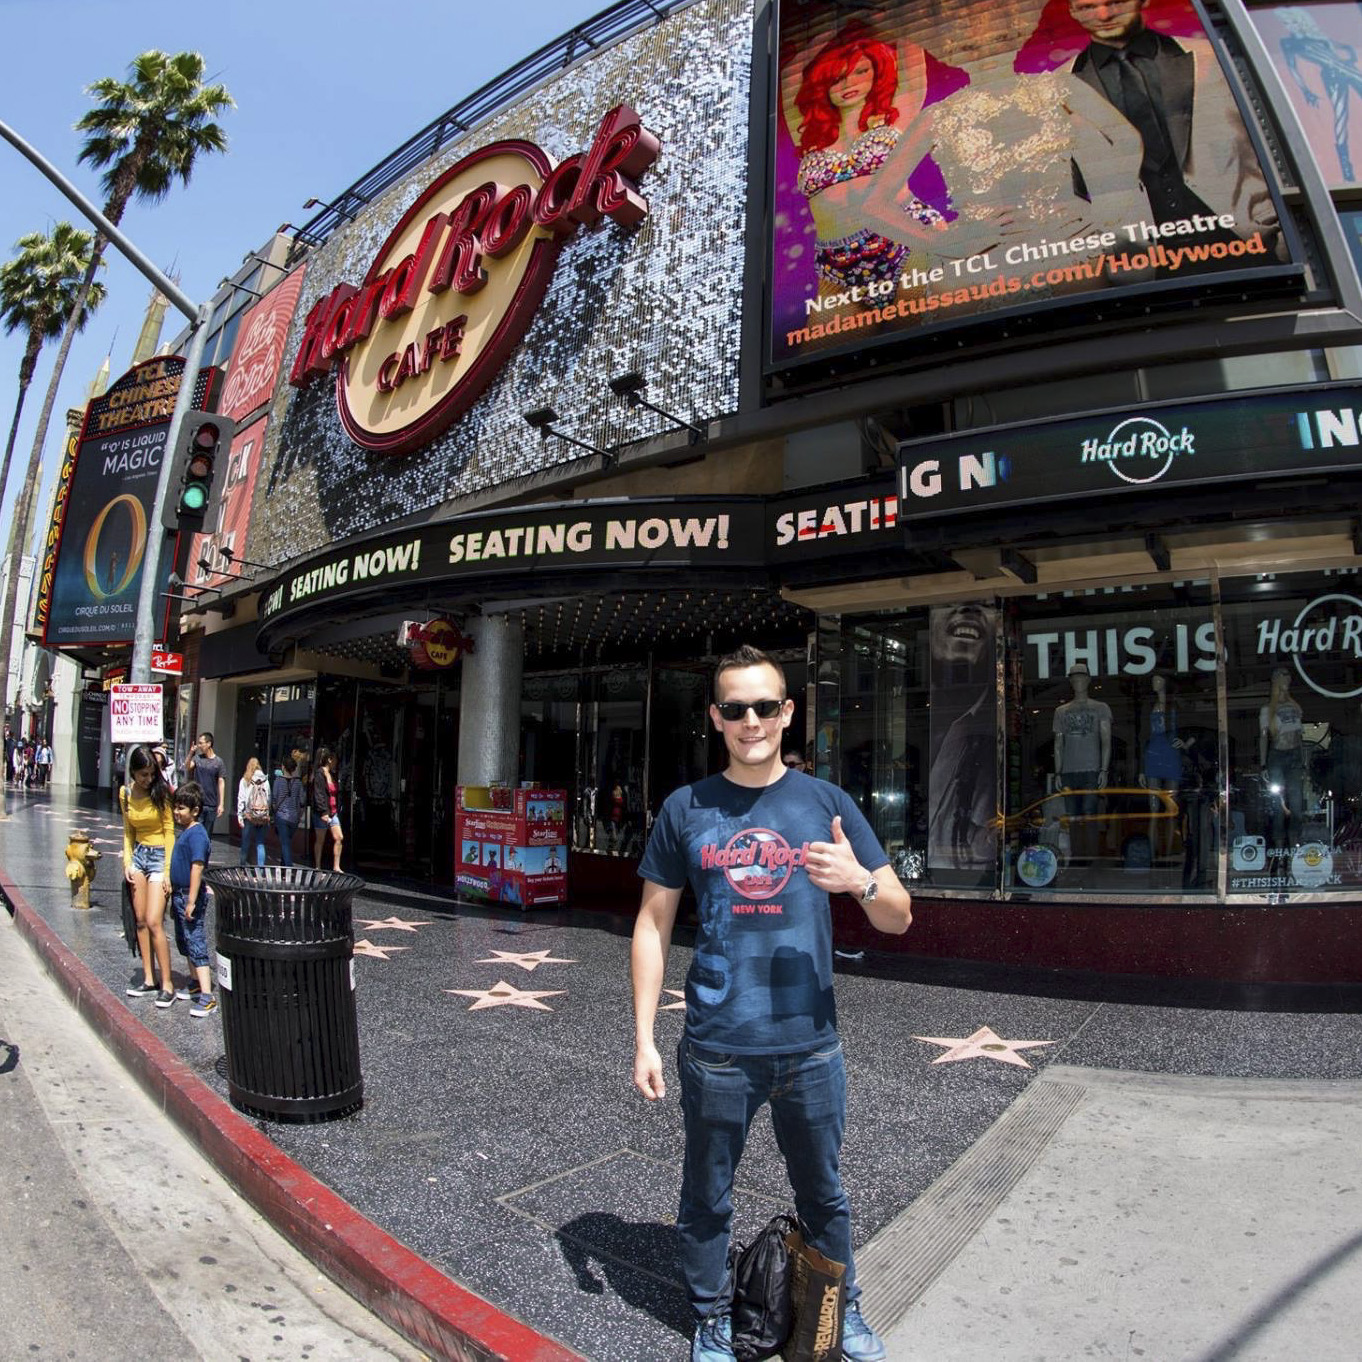 Hard Rock Cafe Hollywood on Hollywood Boulevard - visited in 2016